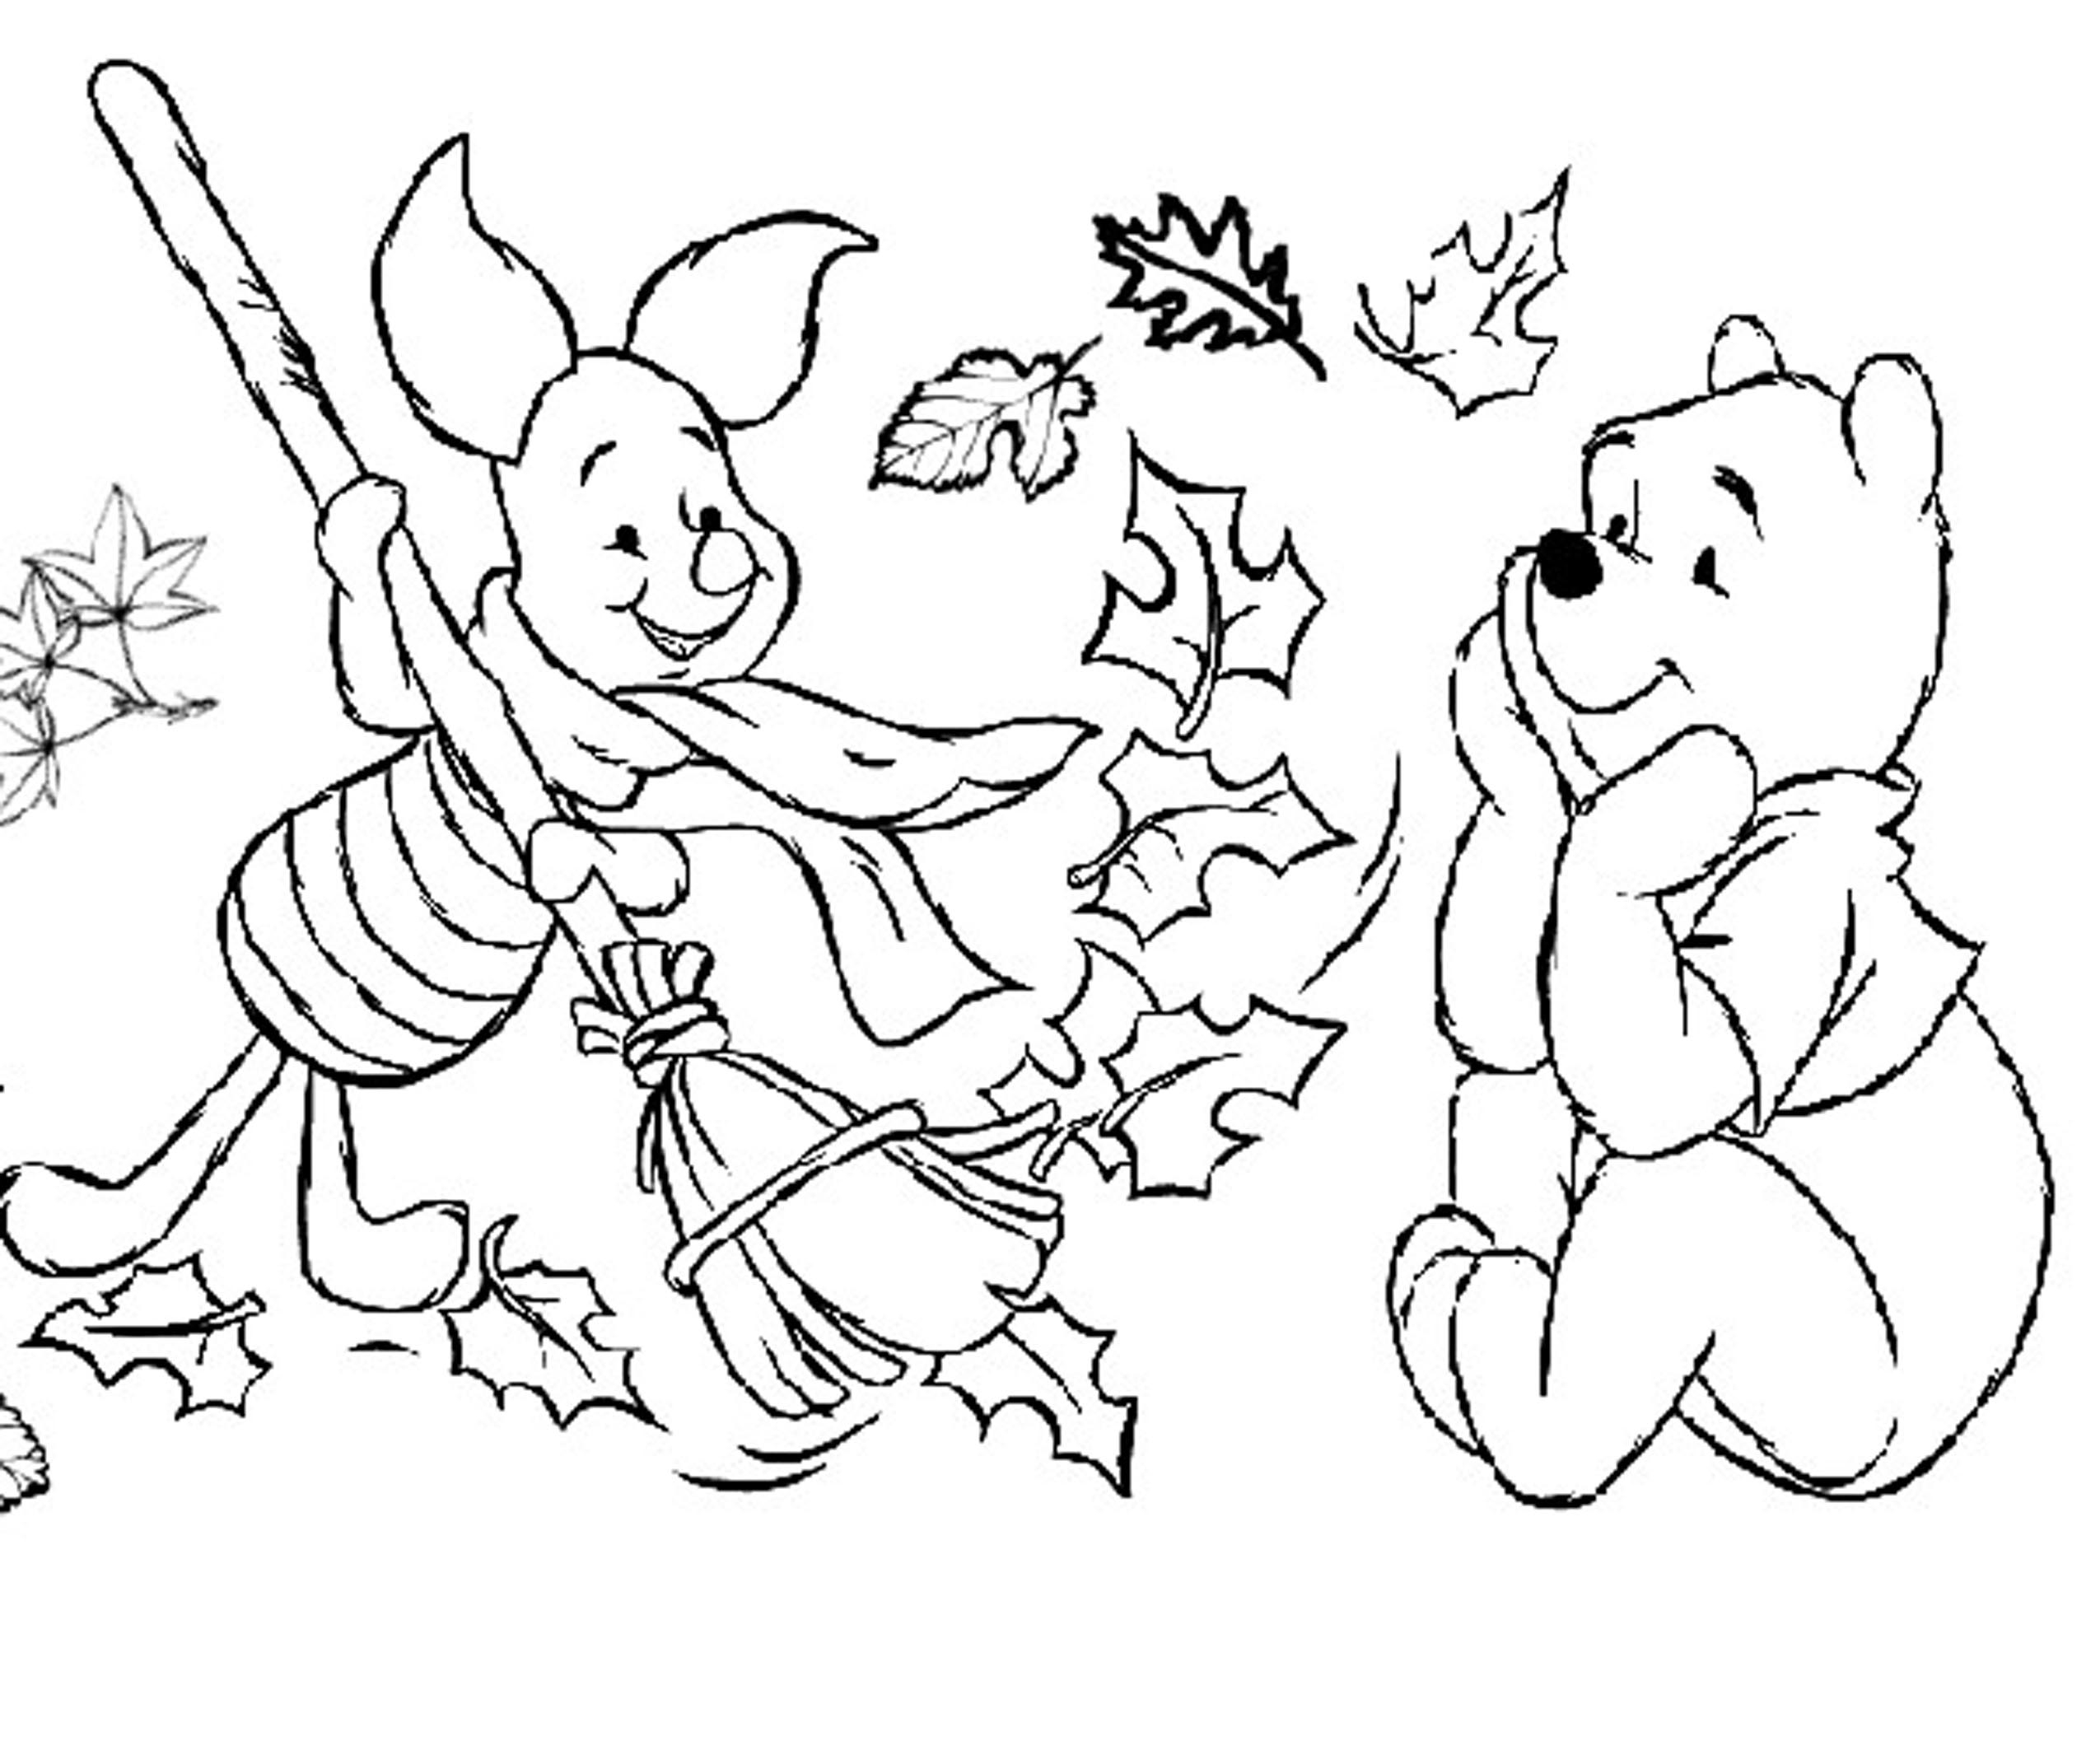 Coloring Pages : Satisfying Printable Bible Coloring Pages Sheets 58 - Free Printable Coloring Pages Fall Season